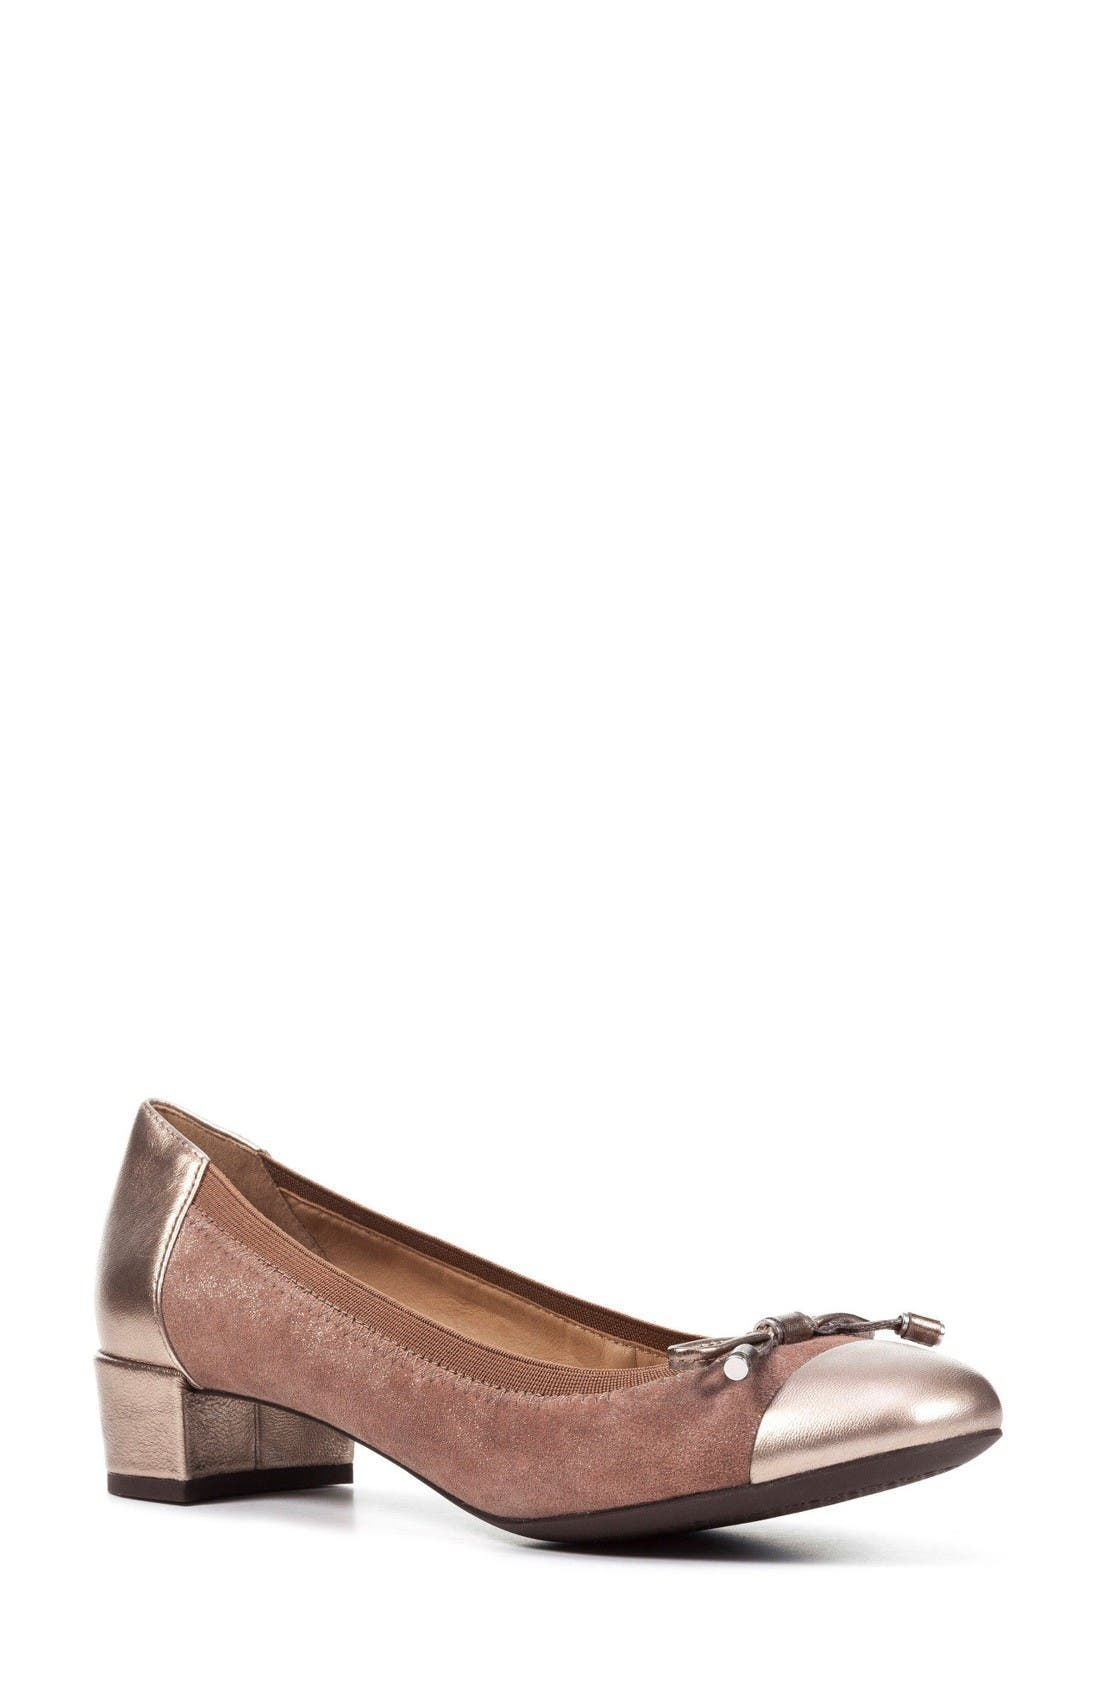 Main Image - Geox 'Carey' Pump (Online Only)